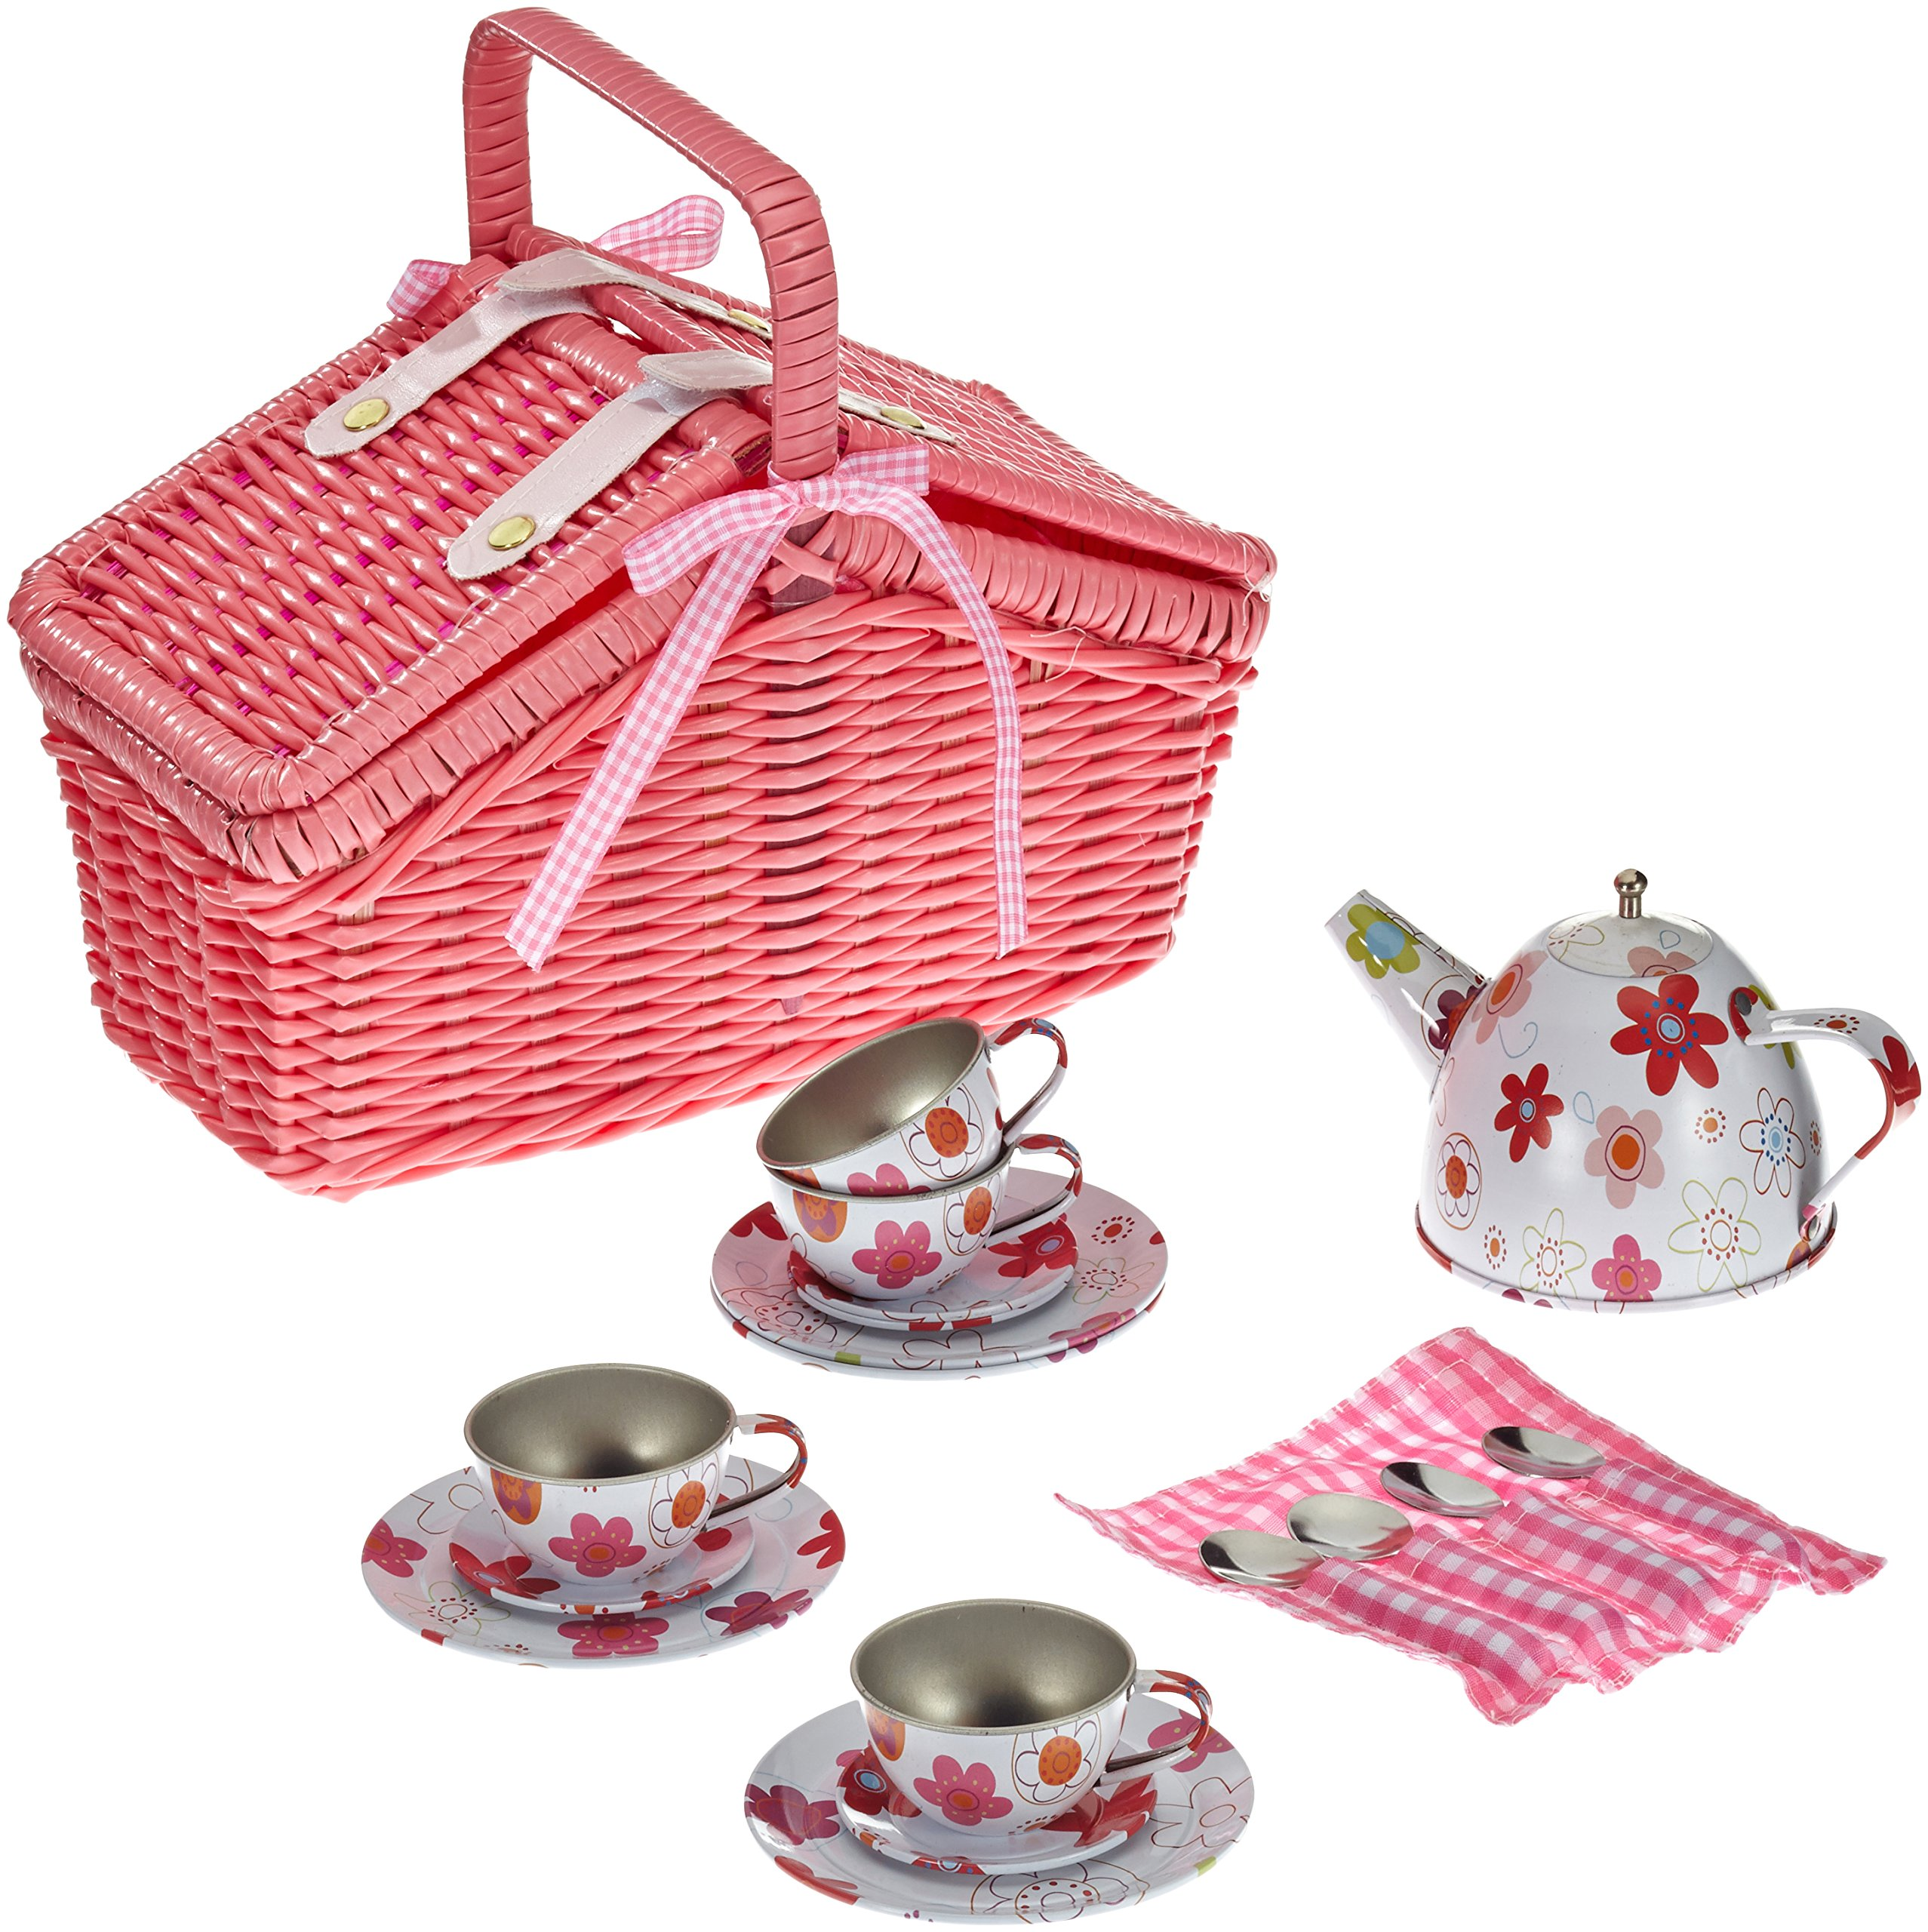 Legler Picnic Basket Play Set with 18 pieces